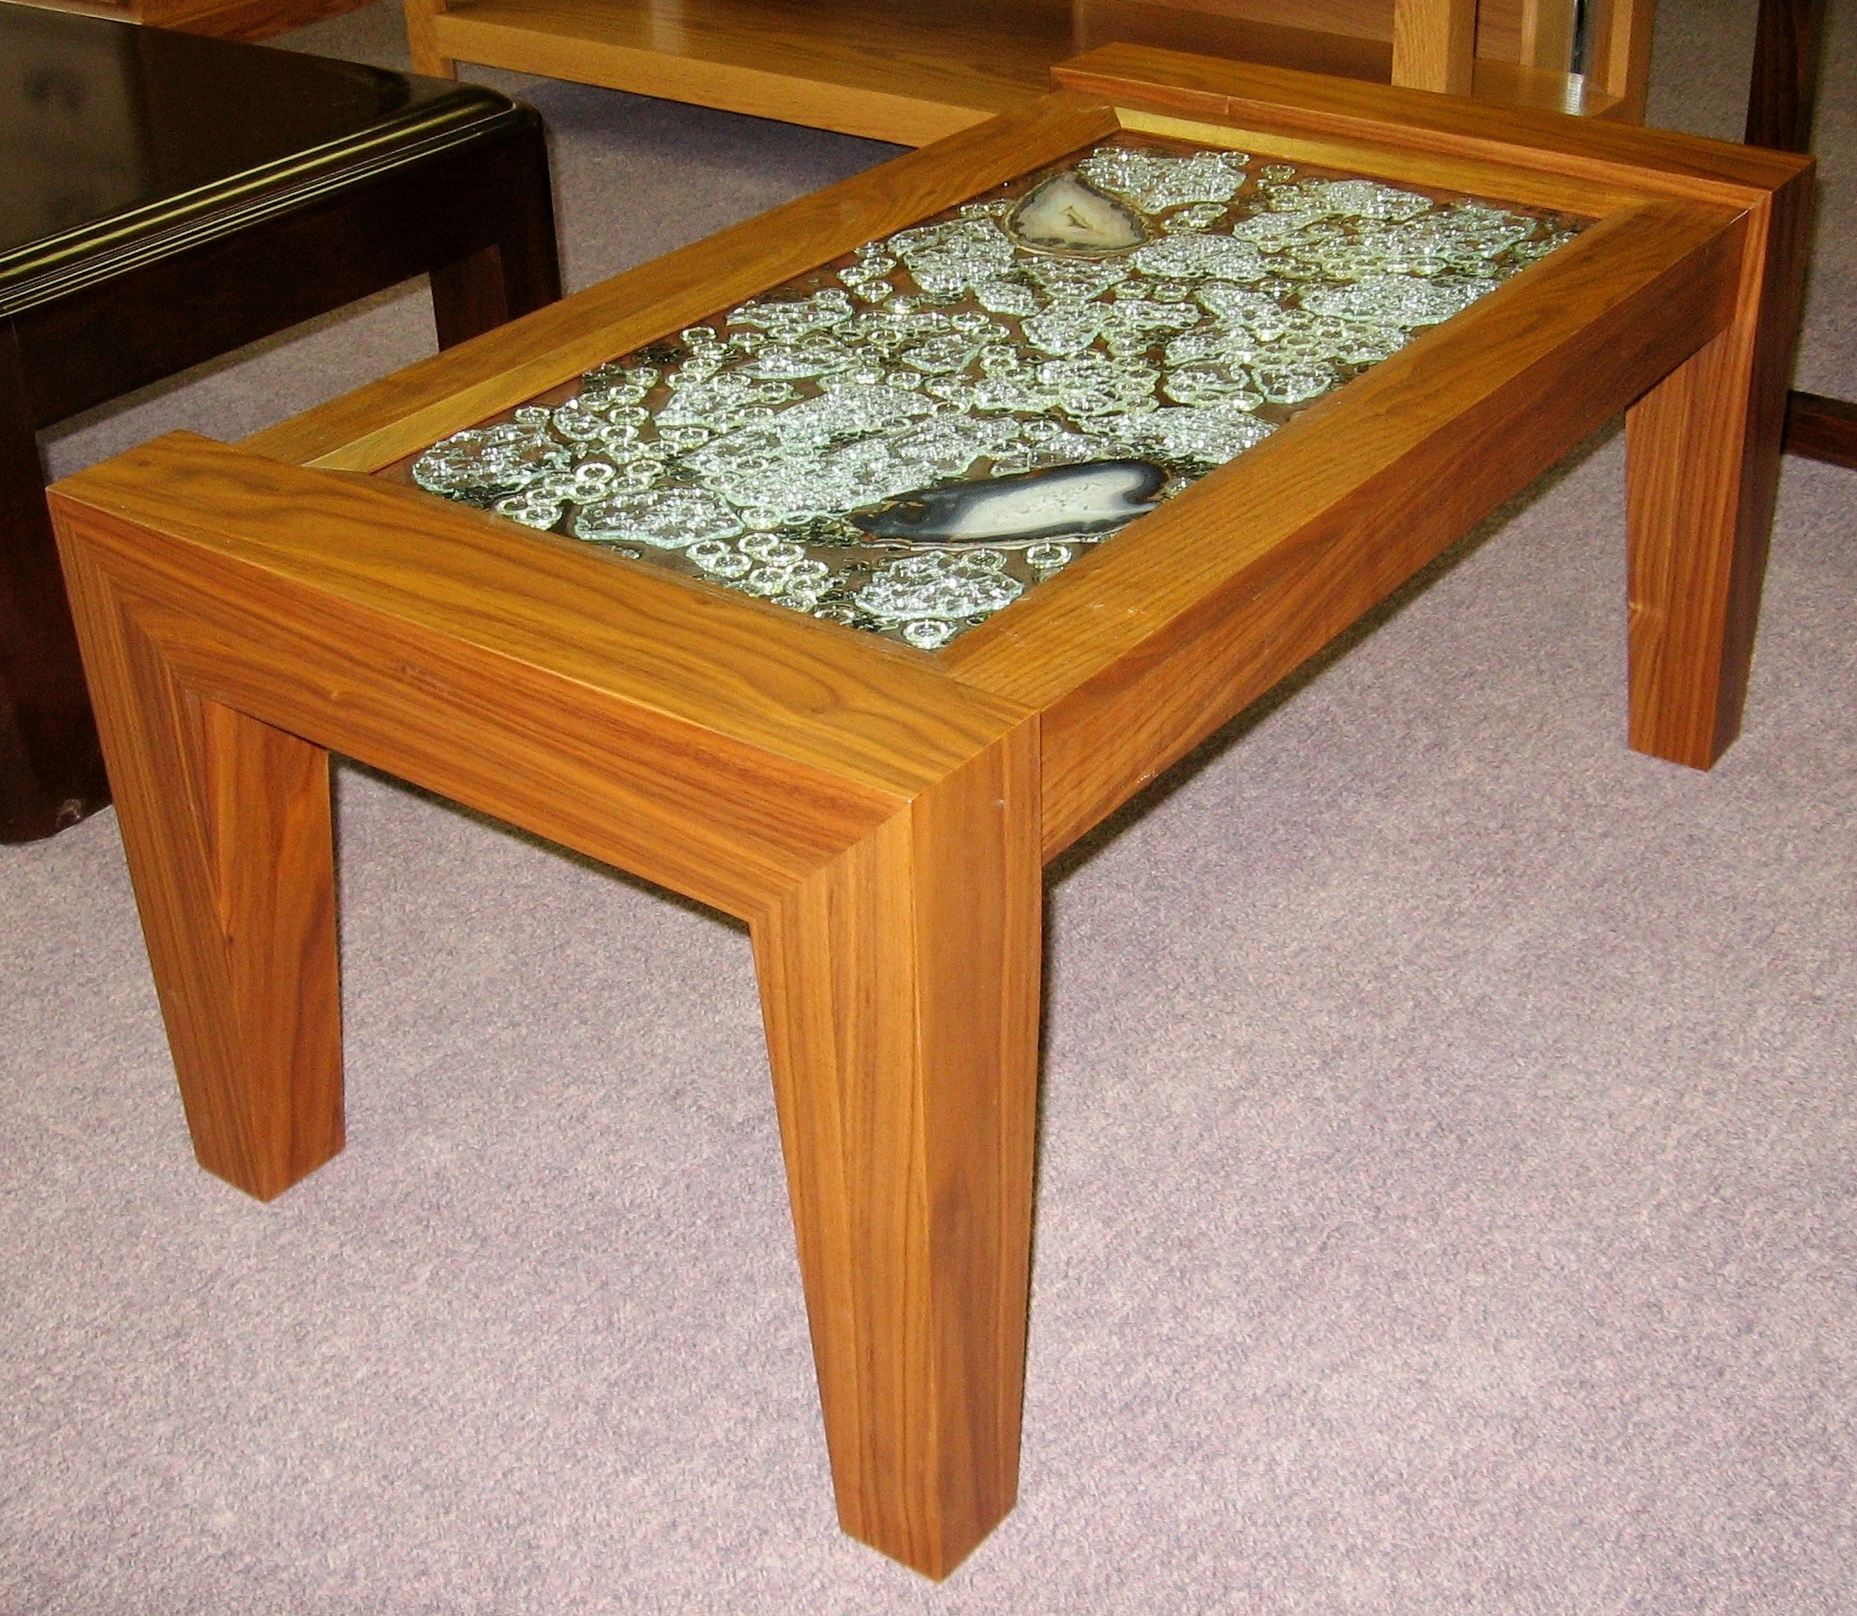 custom-designed-wood-coffee-table-art-glass-top.JPG